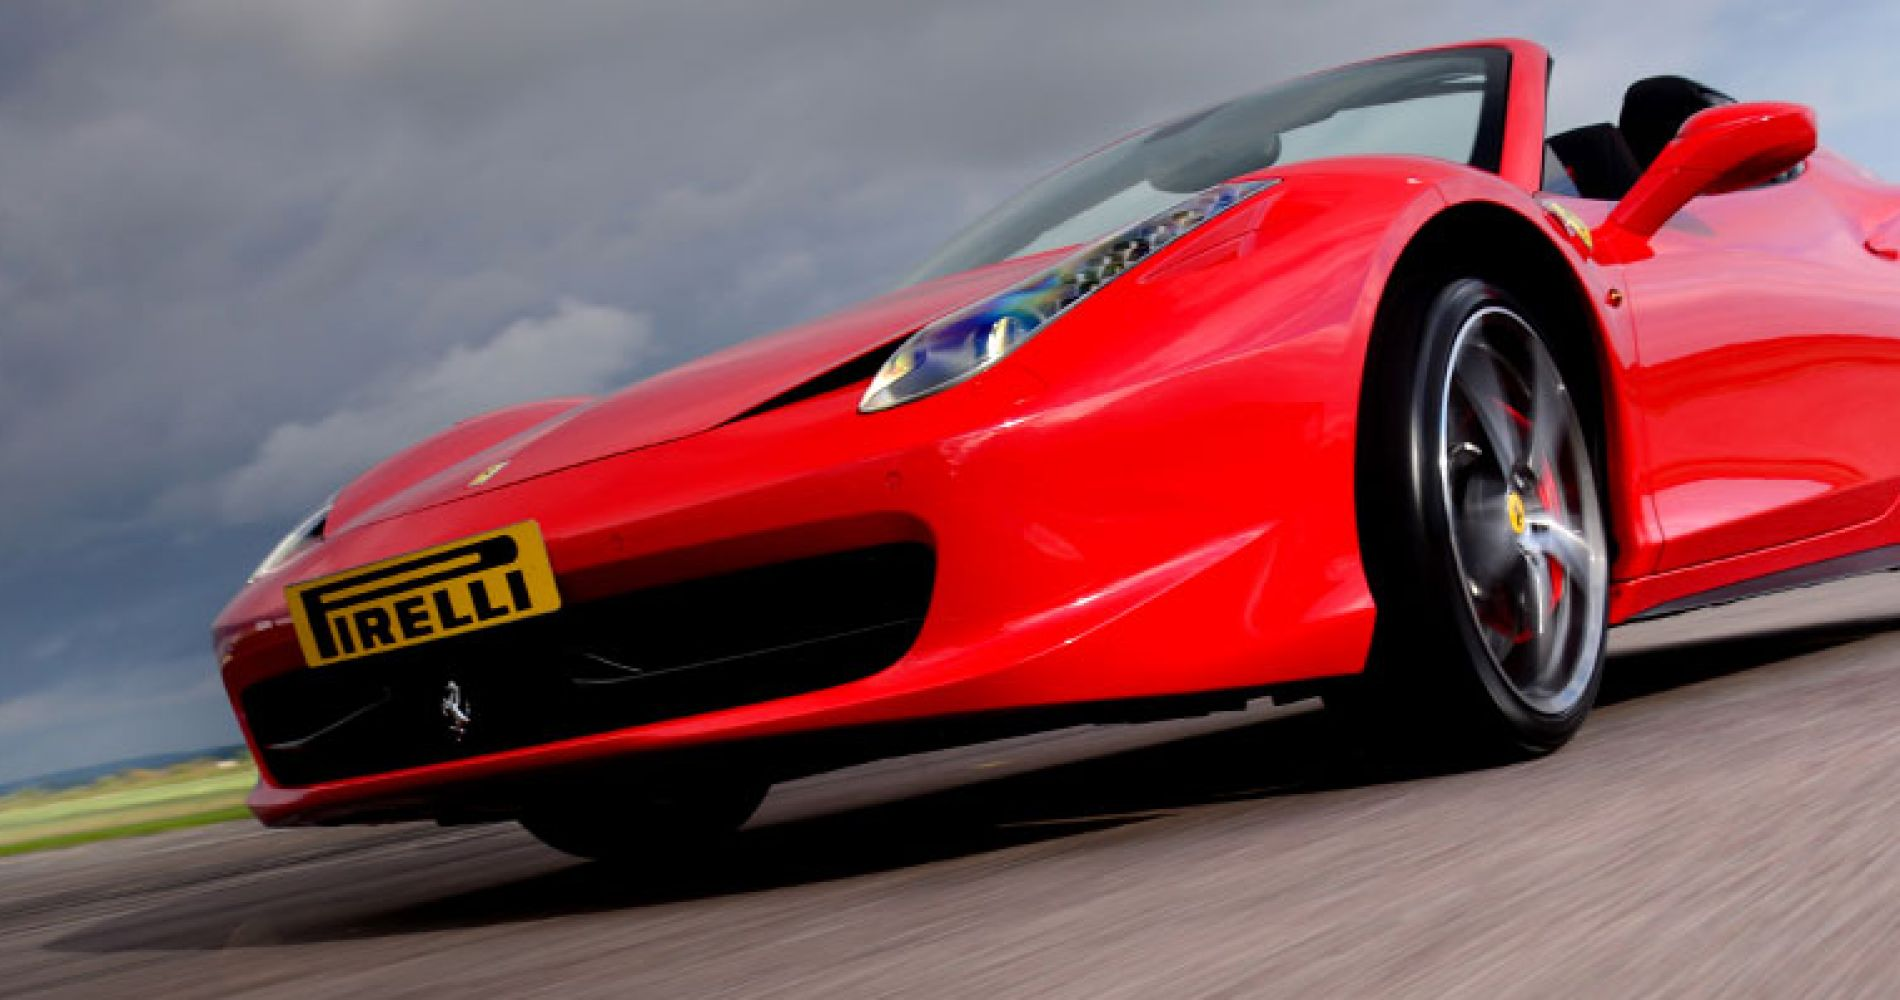 FERRARI 458 SPIDER DRIVING EXPERIENCE PLUS